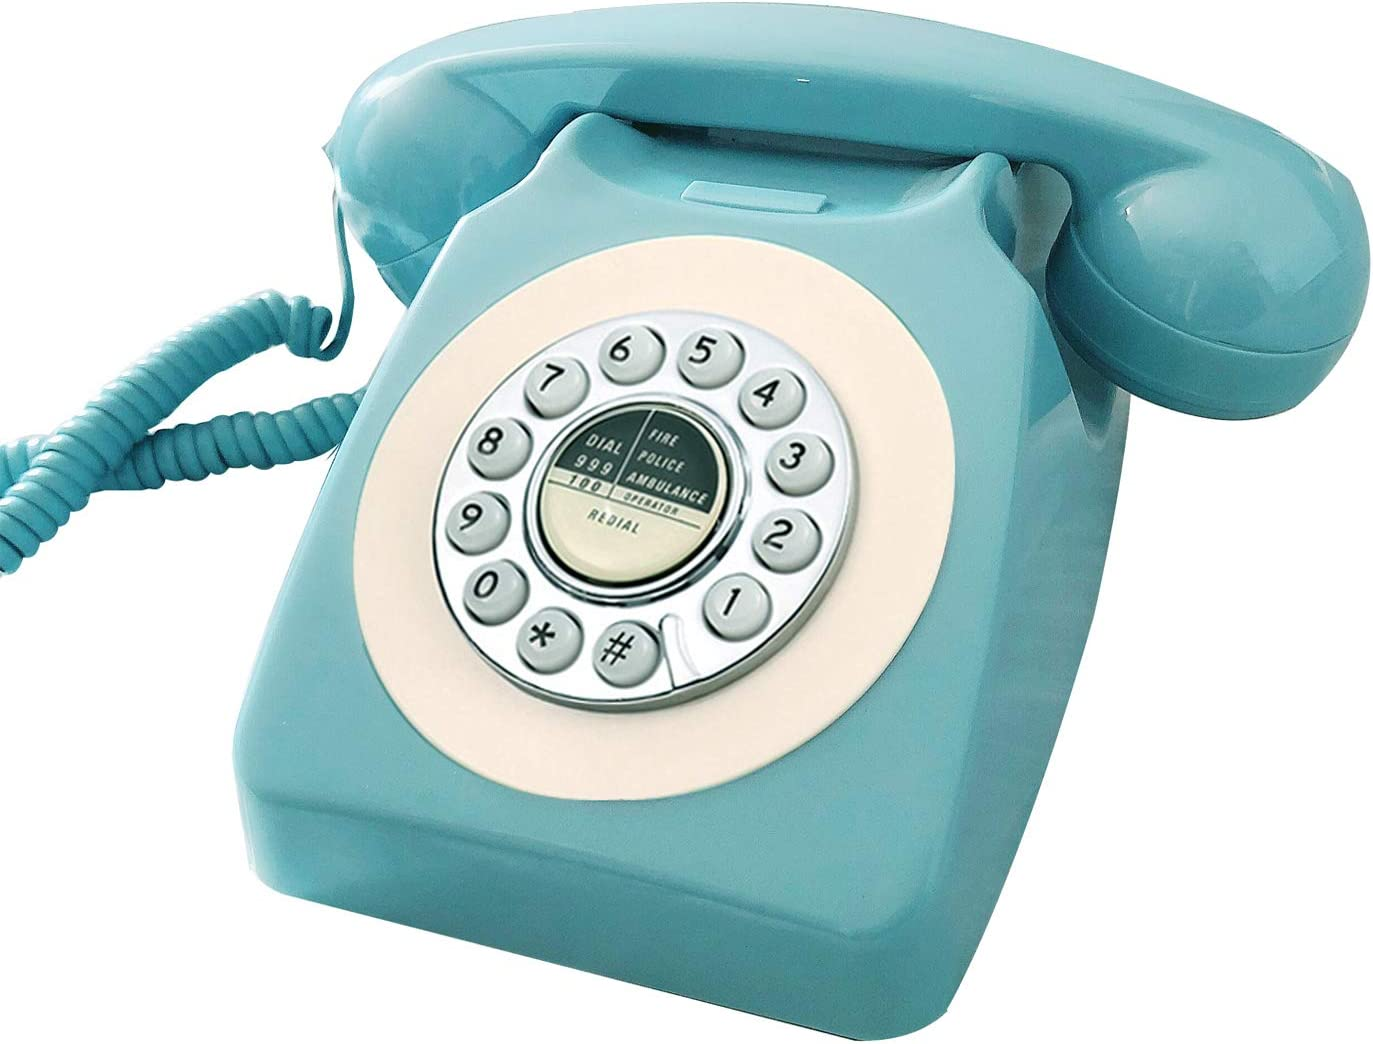 Benotek Retro Telephone, Corded Classic Old Fashion Landline Phones for Home/Office, Wired French Blue Antique Rotary Phone Gift for Art Decor